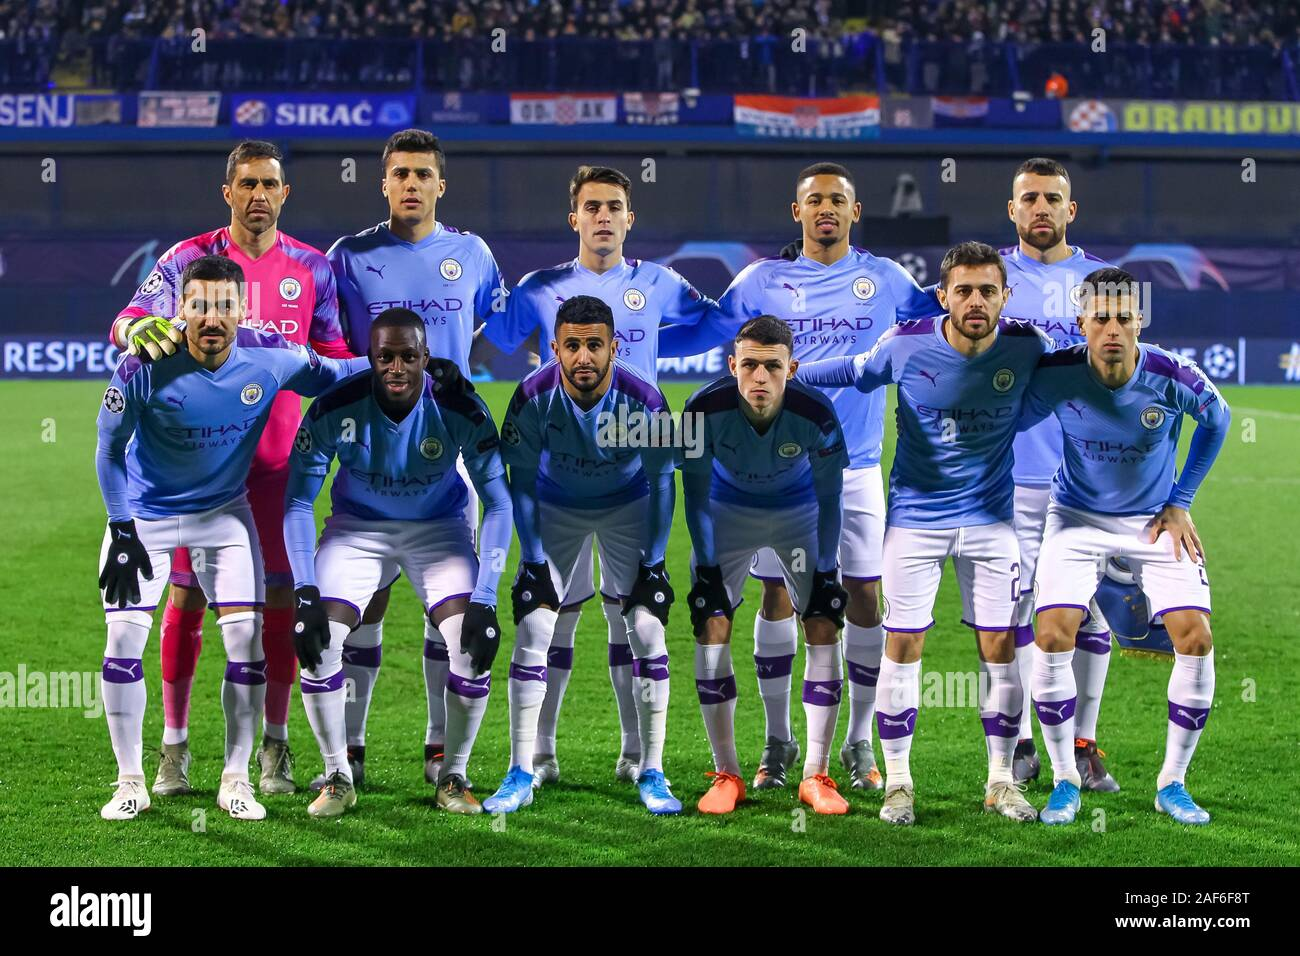 Croatia Match Line Up High Resolution Stock Photography And Images Alamy